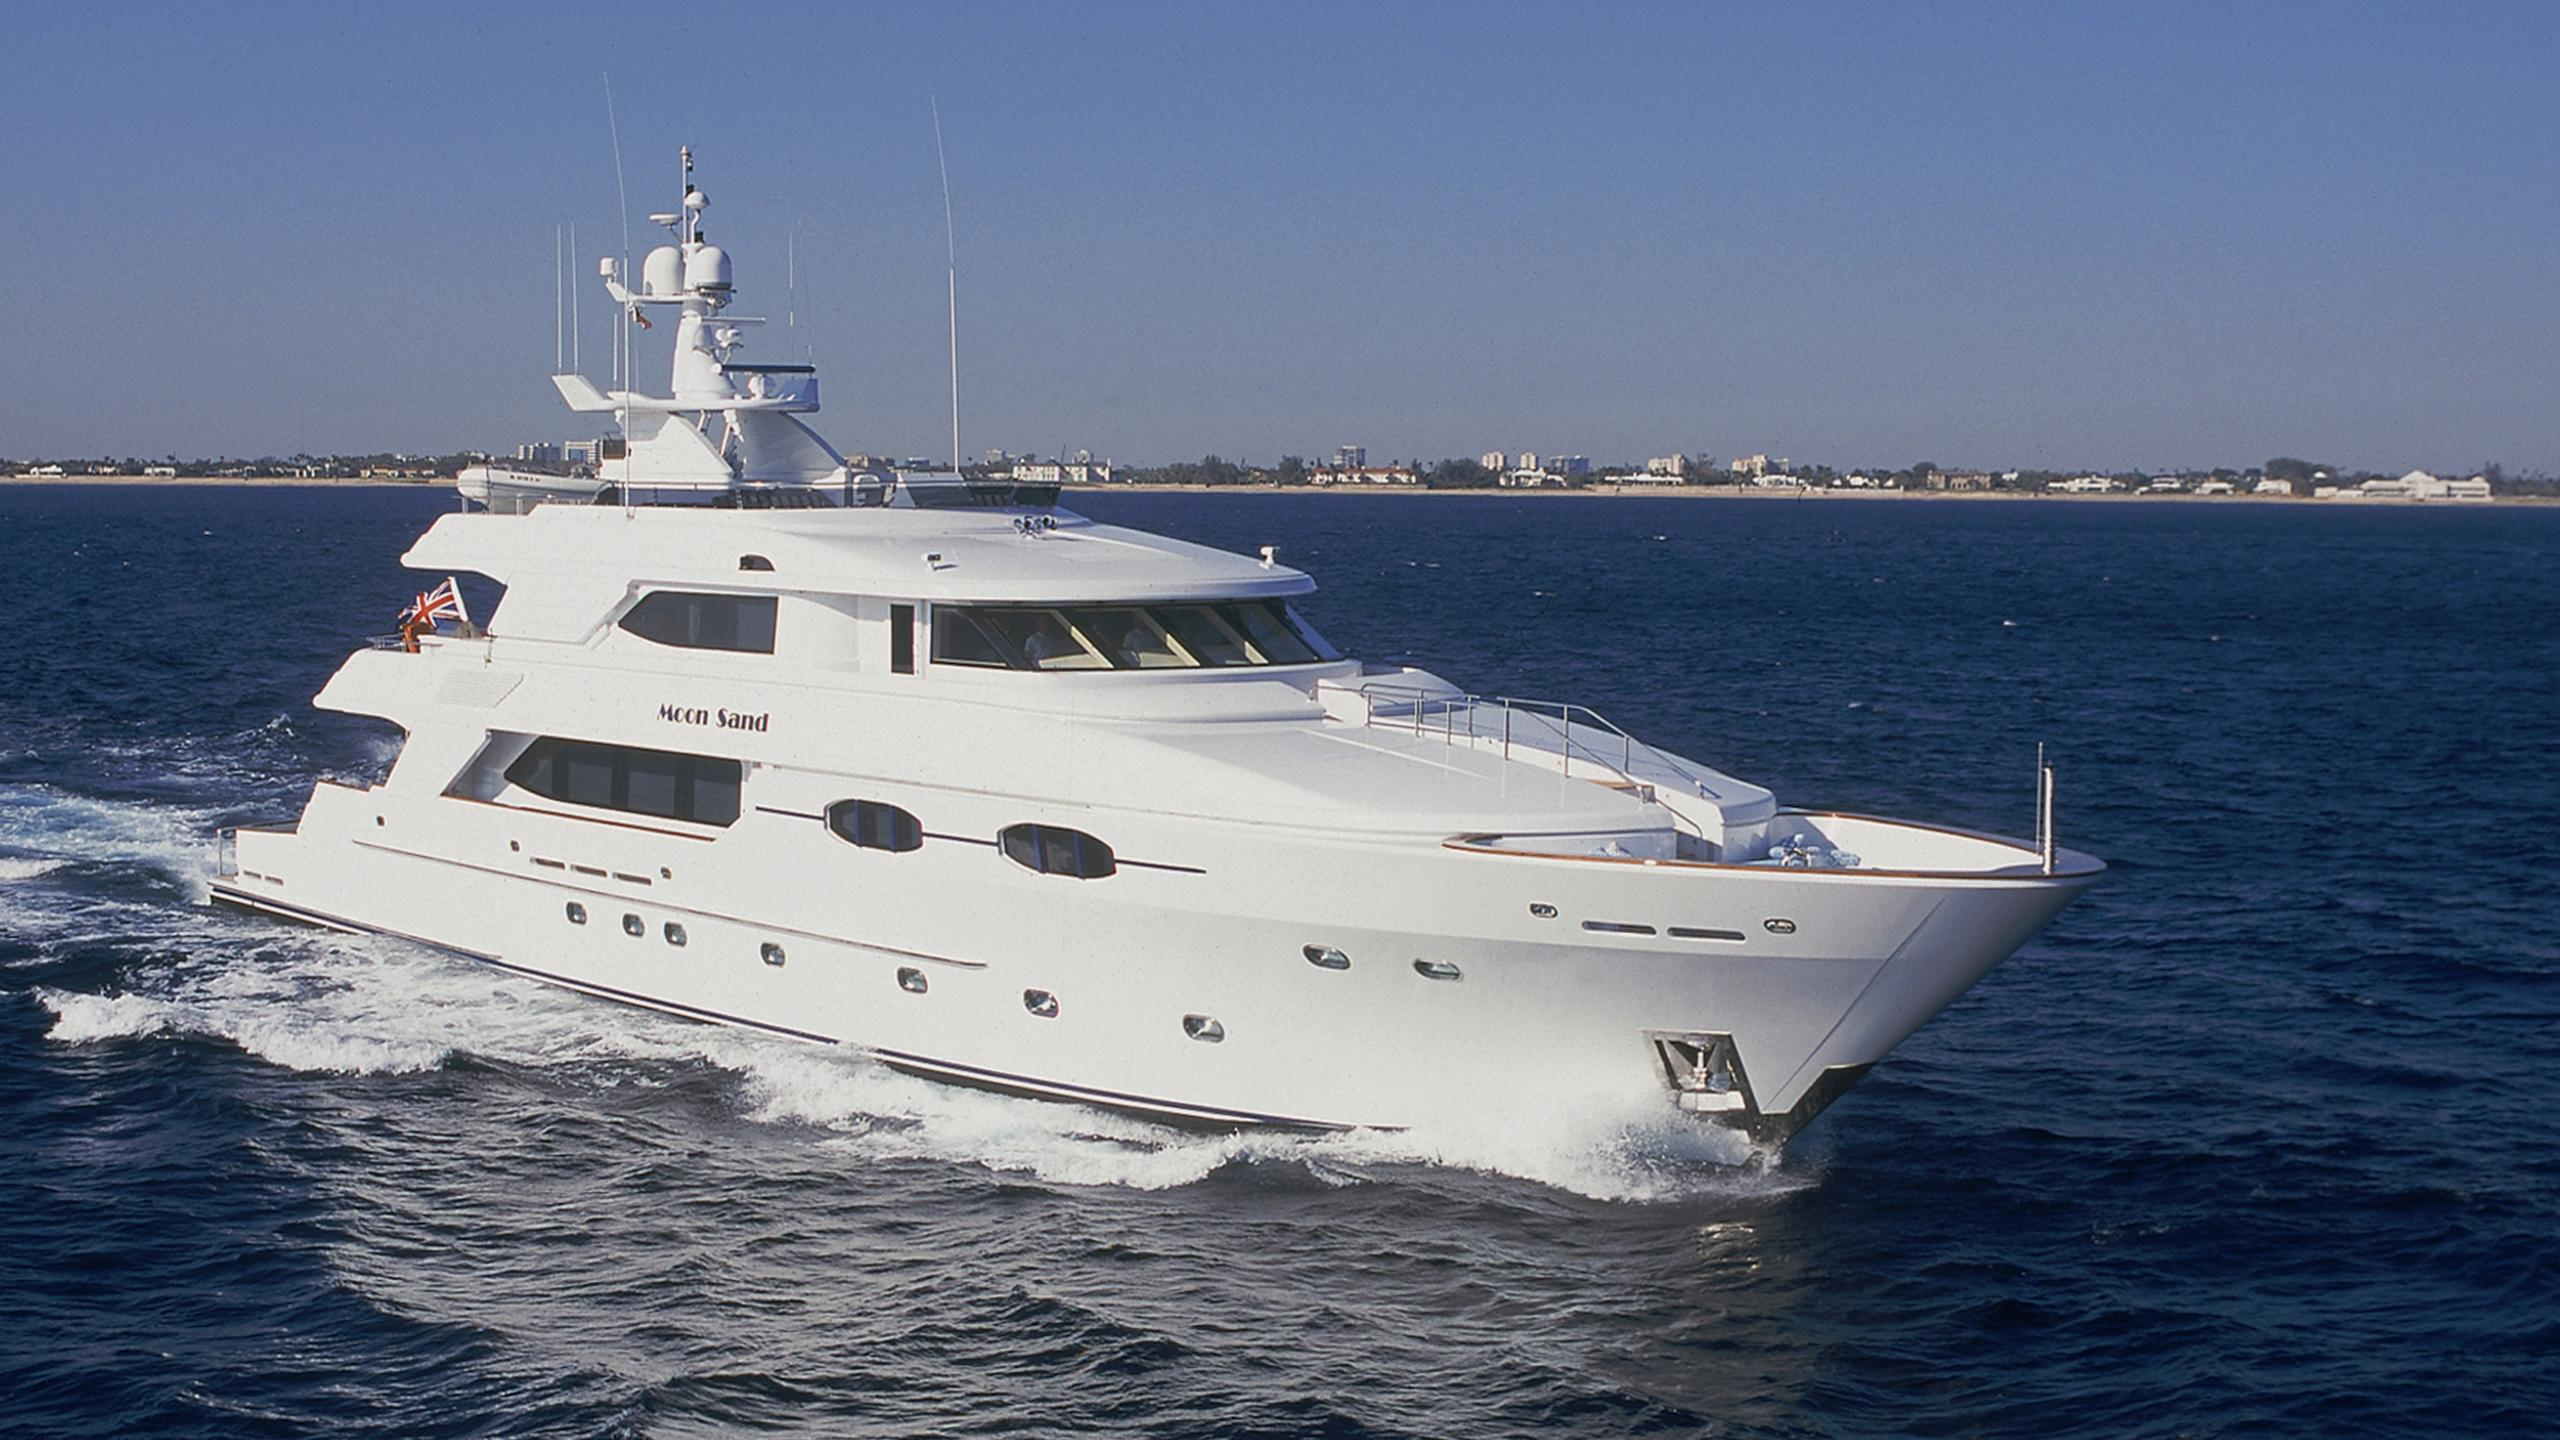 moon-sand-yacht-for-sale-profile